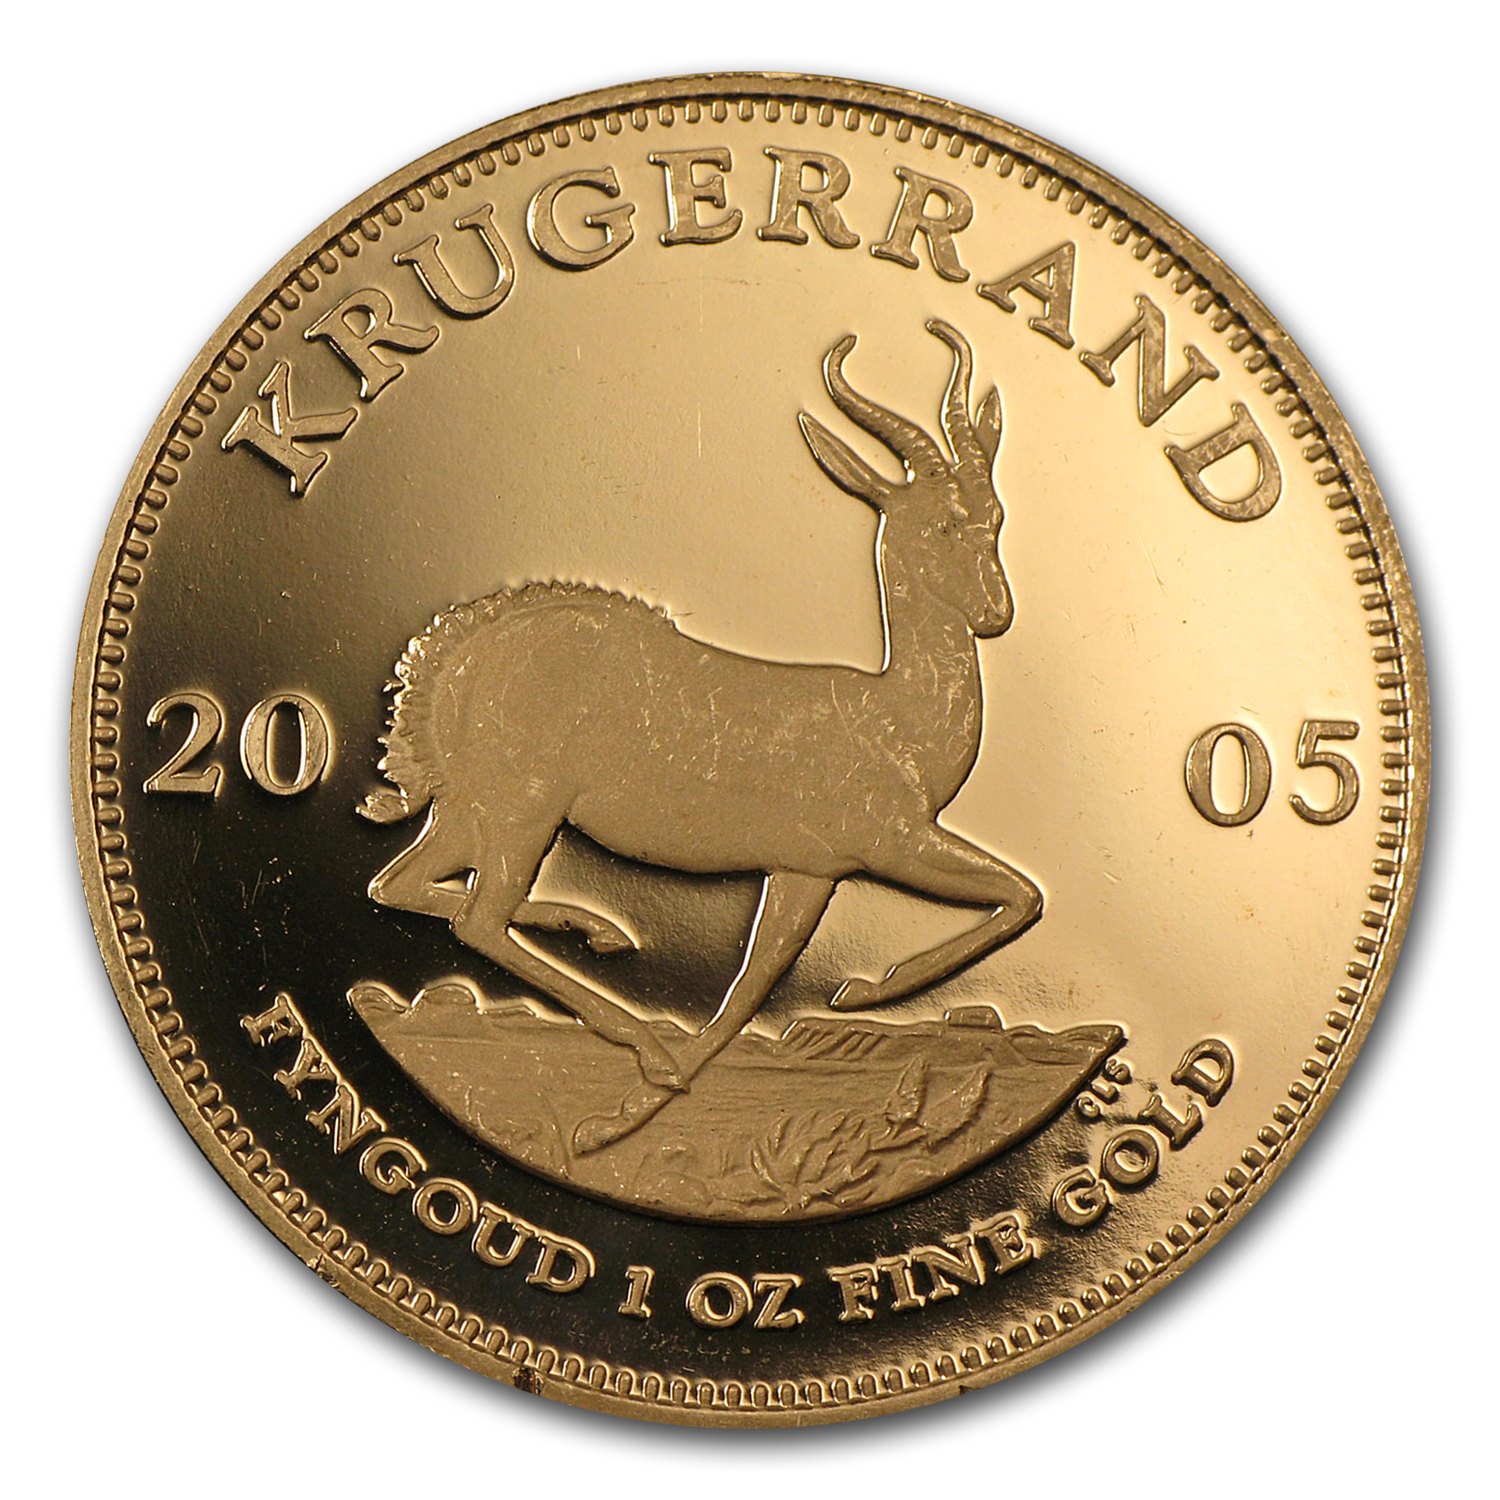 2005 1 oz Gold South African Krugerrand (Proof)